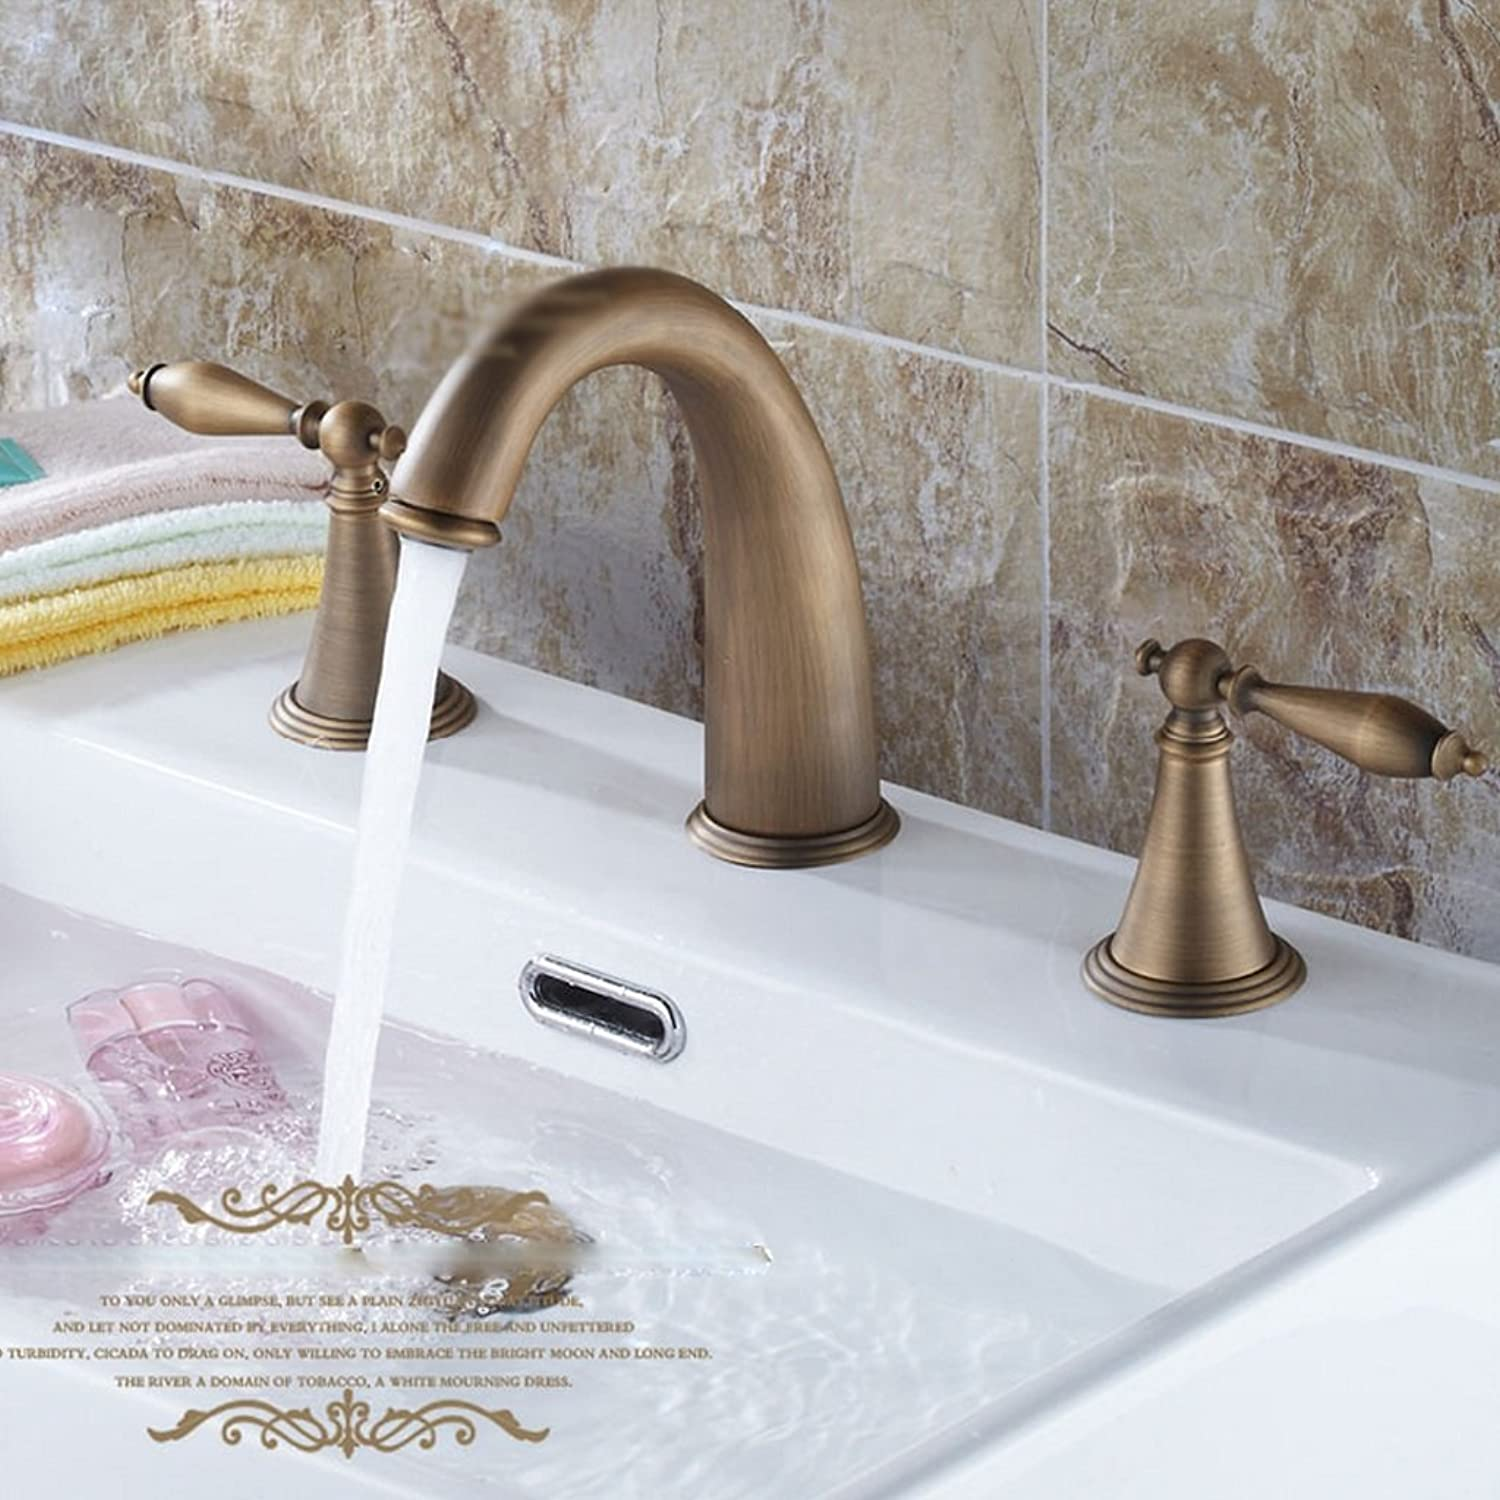 MEILING Full Copper Faucet Antique European Basin Faucet Double The Three Holes Leading Ceramic Basin Water Dragon